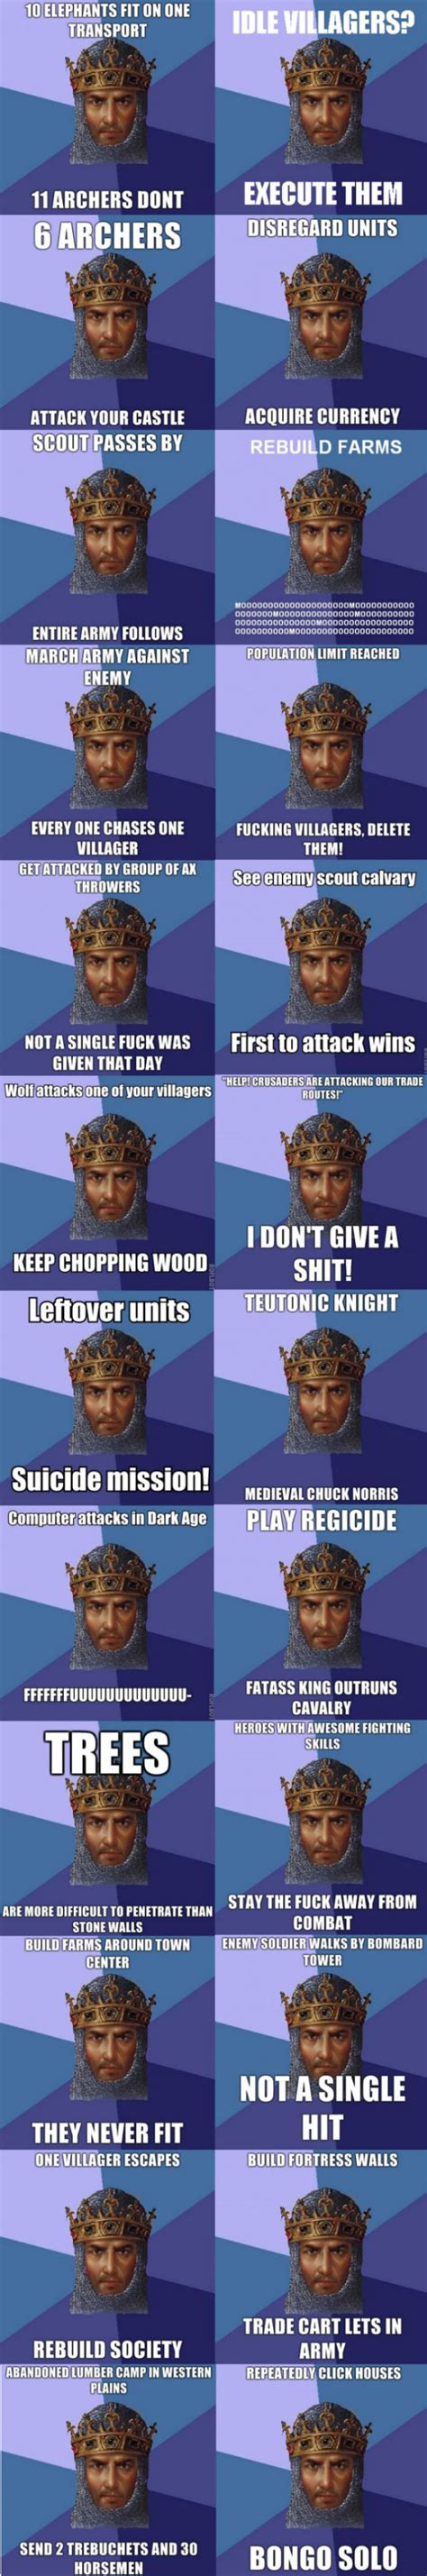 Age Of Empires Memes - age of empires logic meme weknowmemes memes pinterest empire meme and gaming